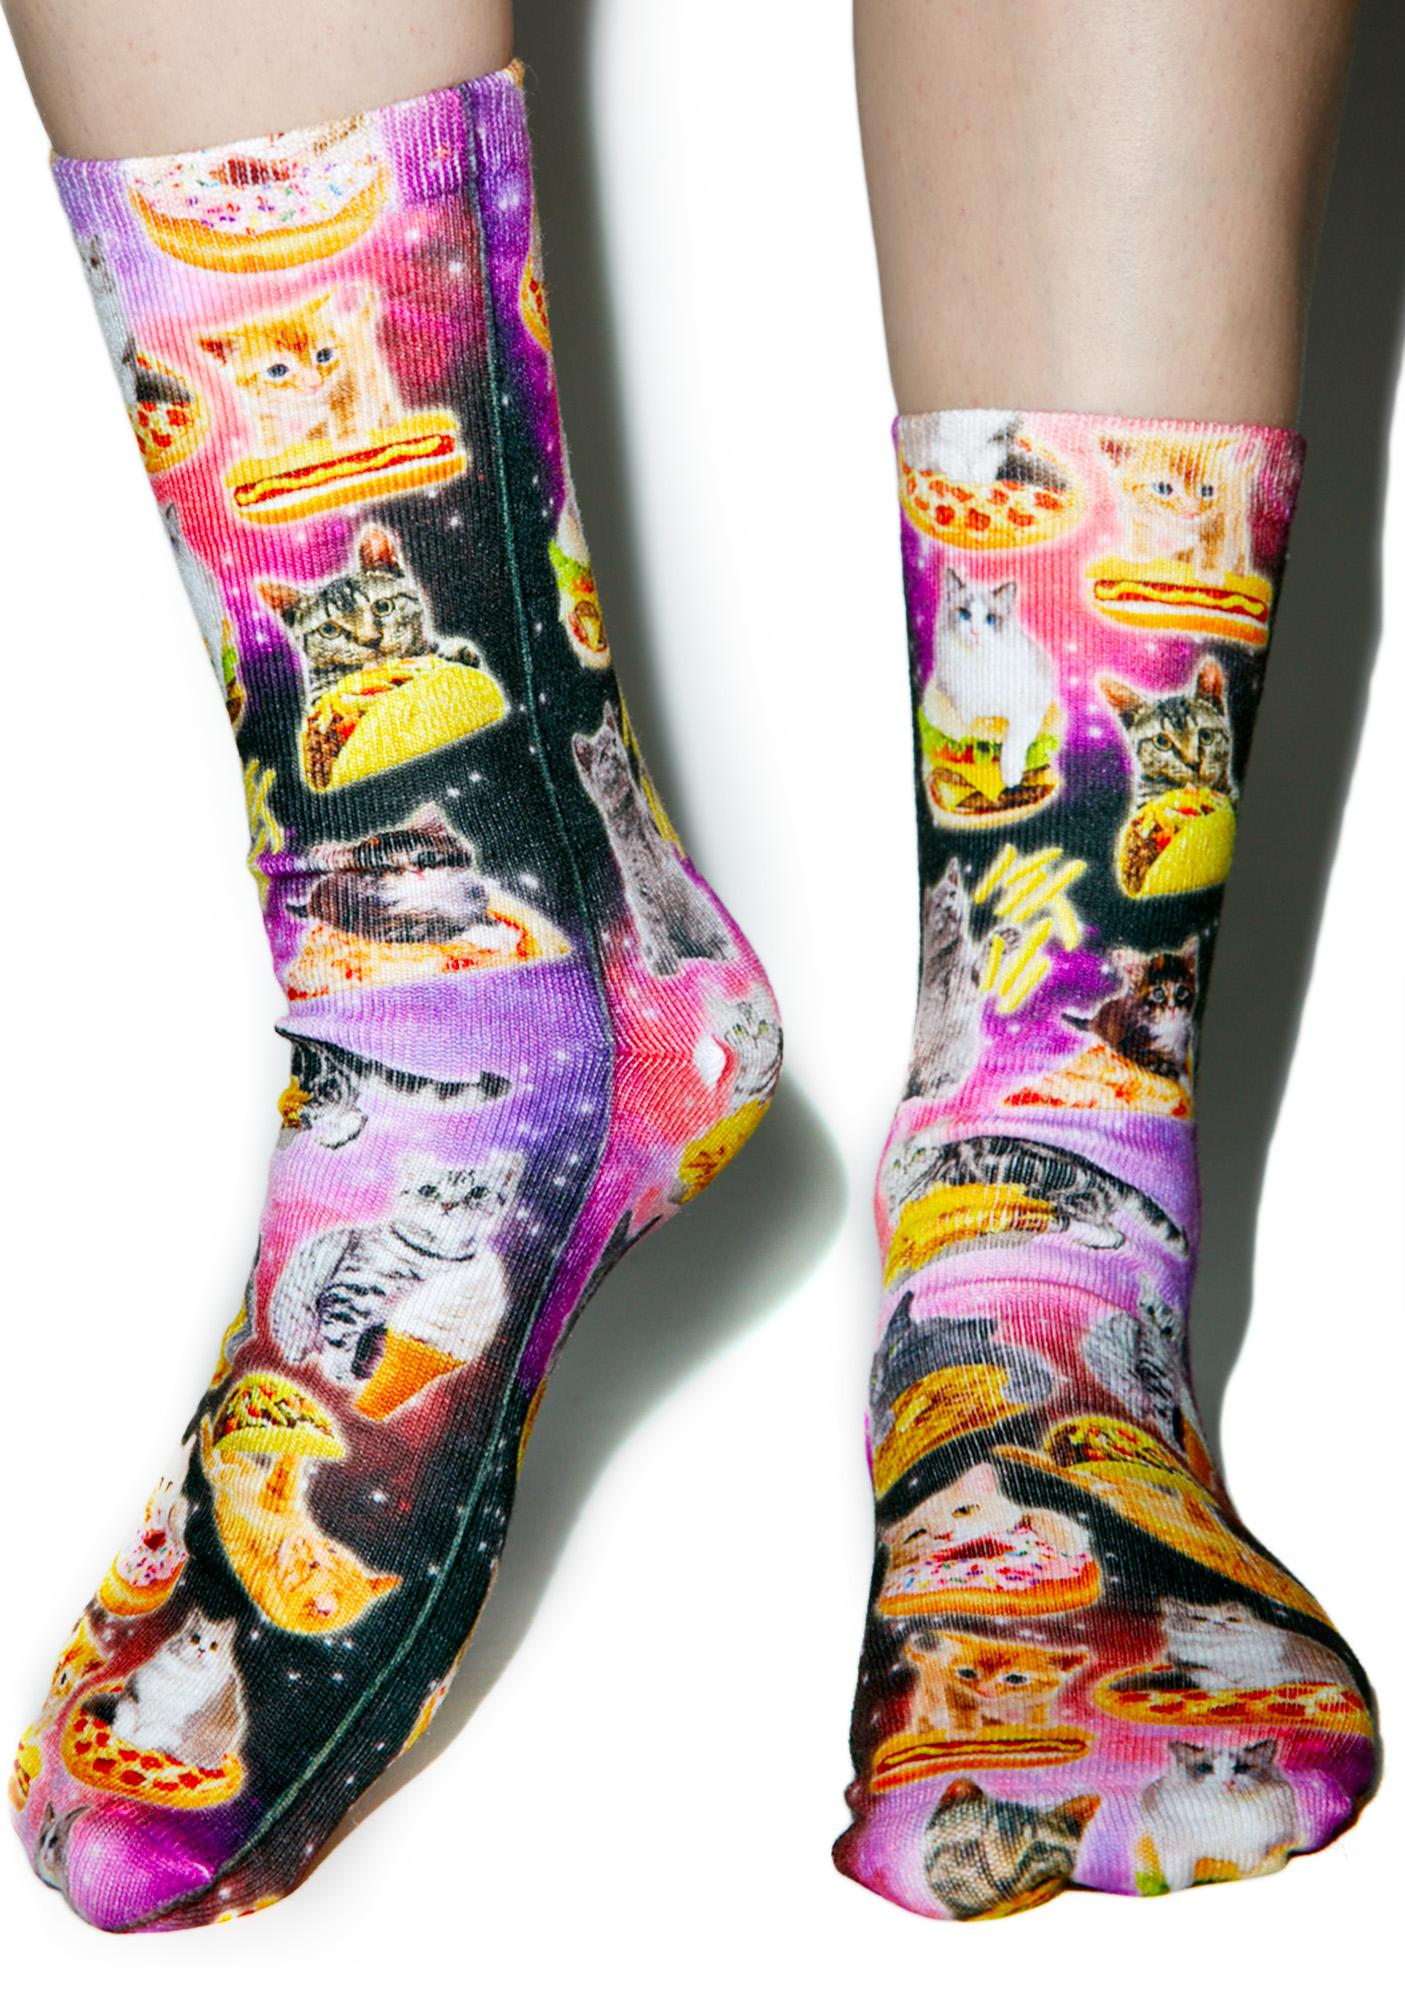 Kittens & Munchies Socks